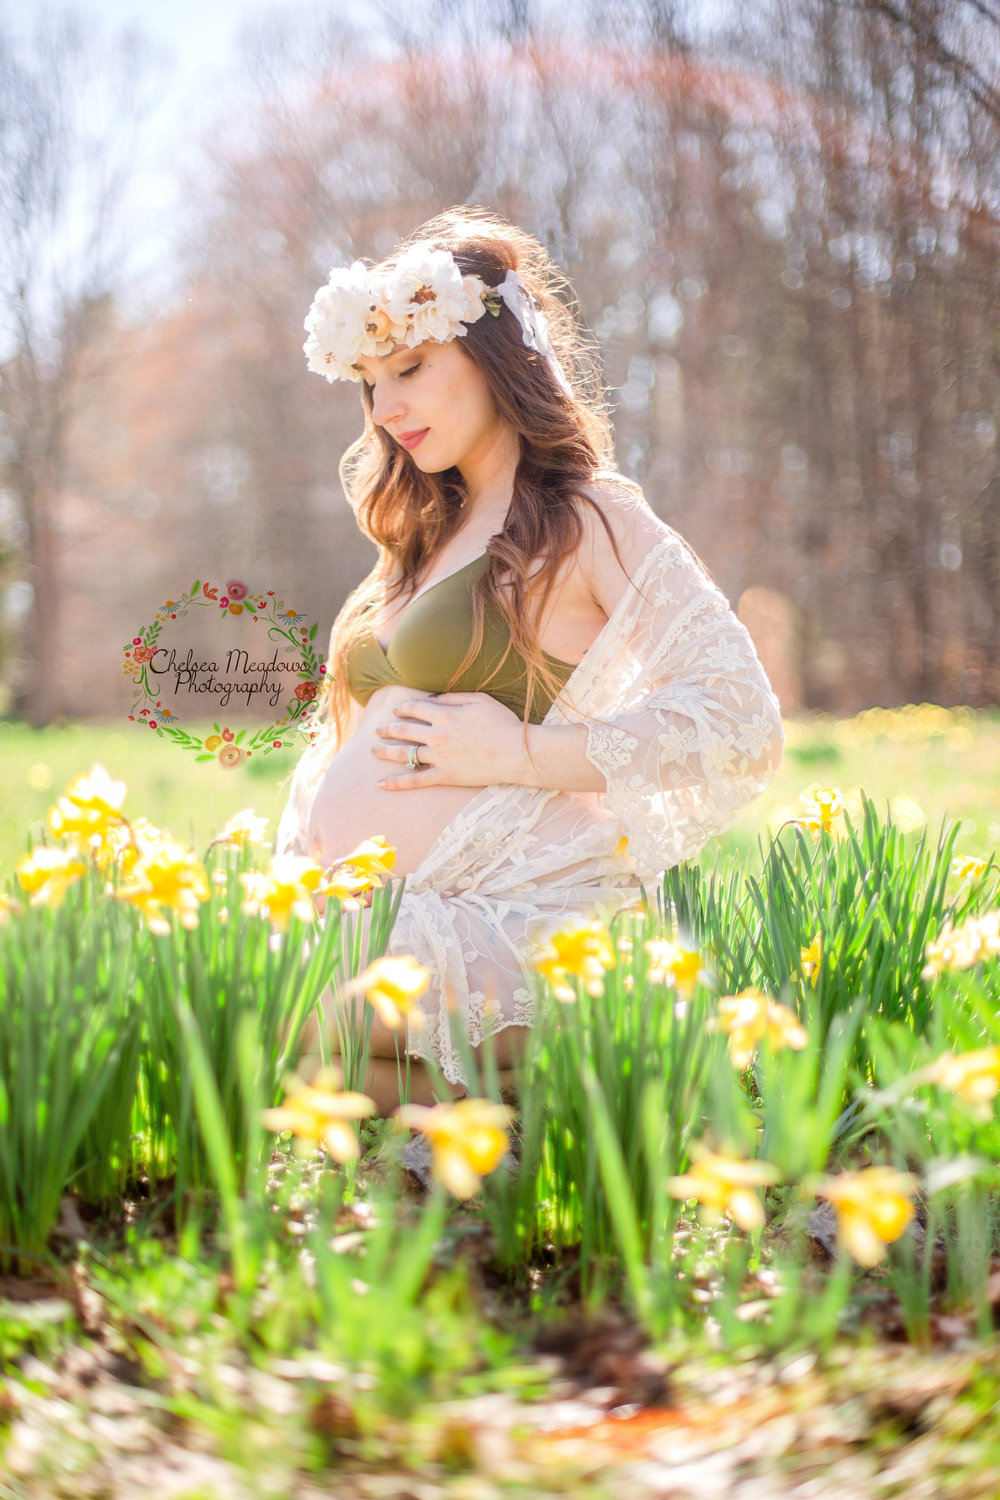 Brittany Maternity Photos - Nashville Maternity Photography - Chelsea Meadows Photography (2)_edited-2.jpg